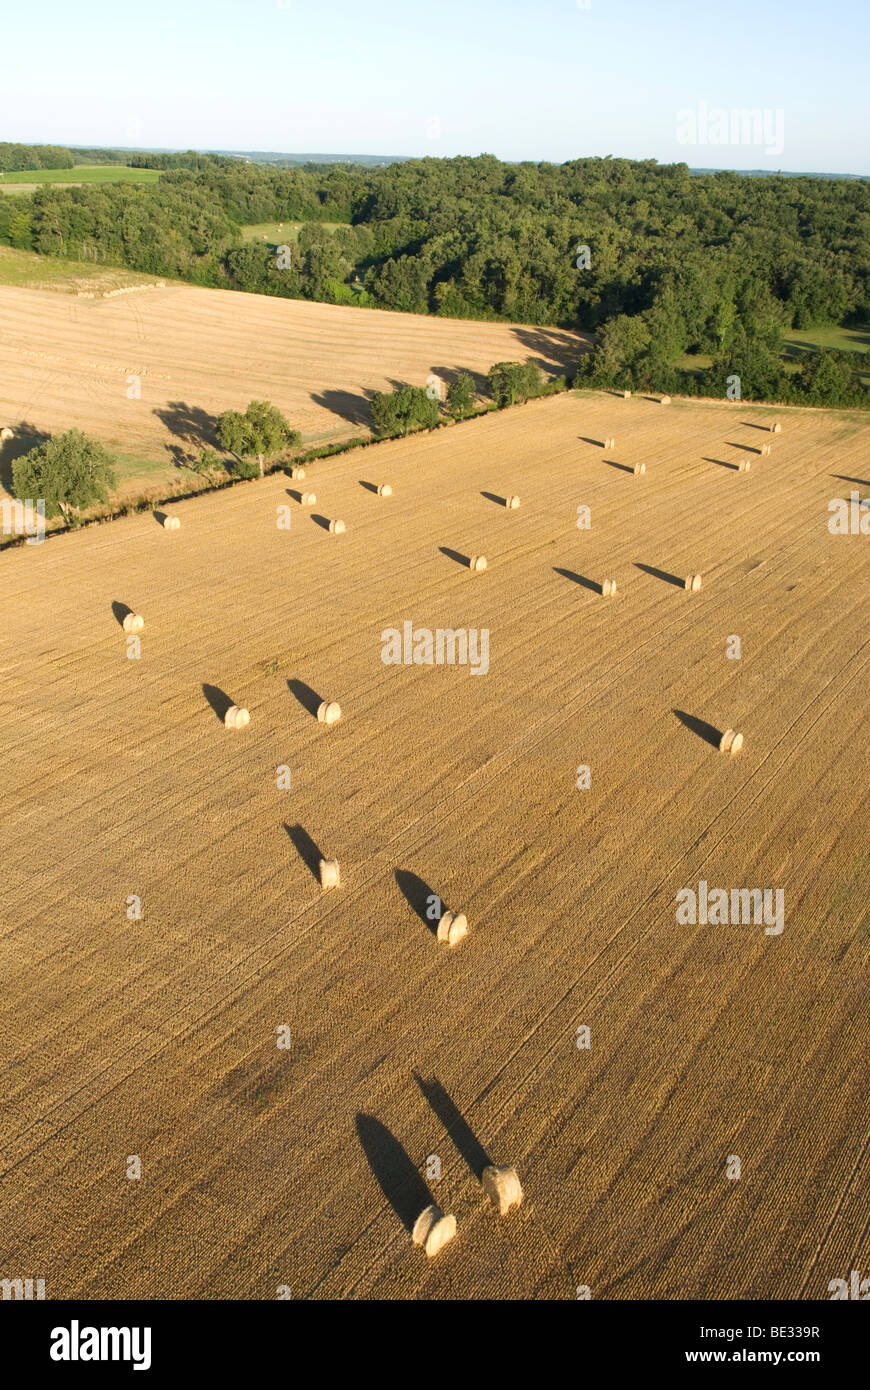 view from hot air balloon over harvested fields in the Dordoigne, France - Stock Image